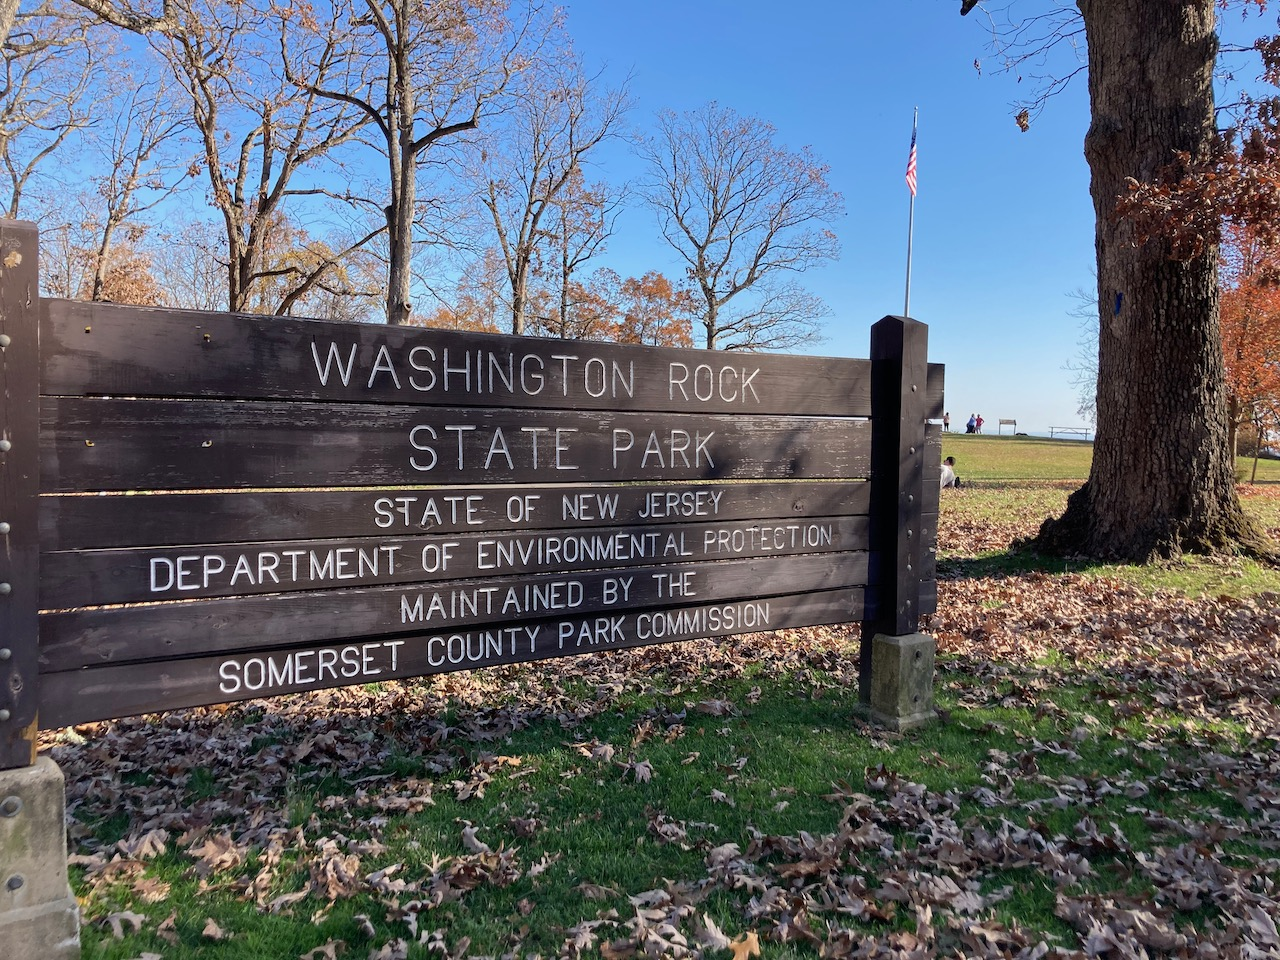 Entrance sign to Washington Rock State Park